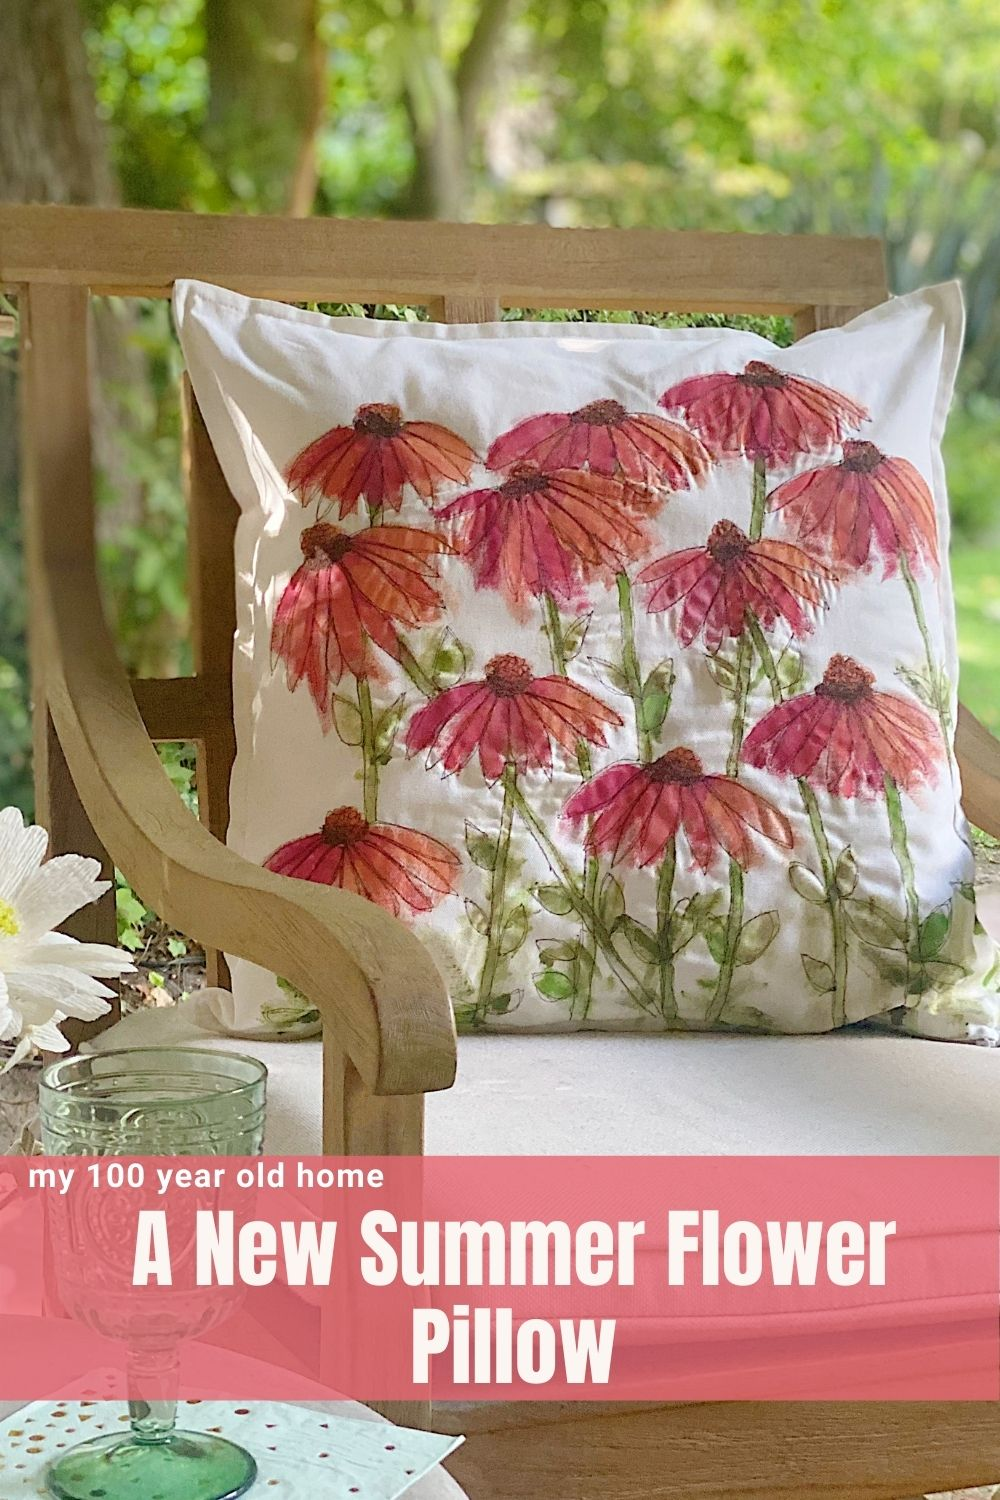 I made a new summer flower pillow this week. Today I am sharing how to make a pillow cover with paint and free motion stitched embroidery.